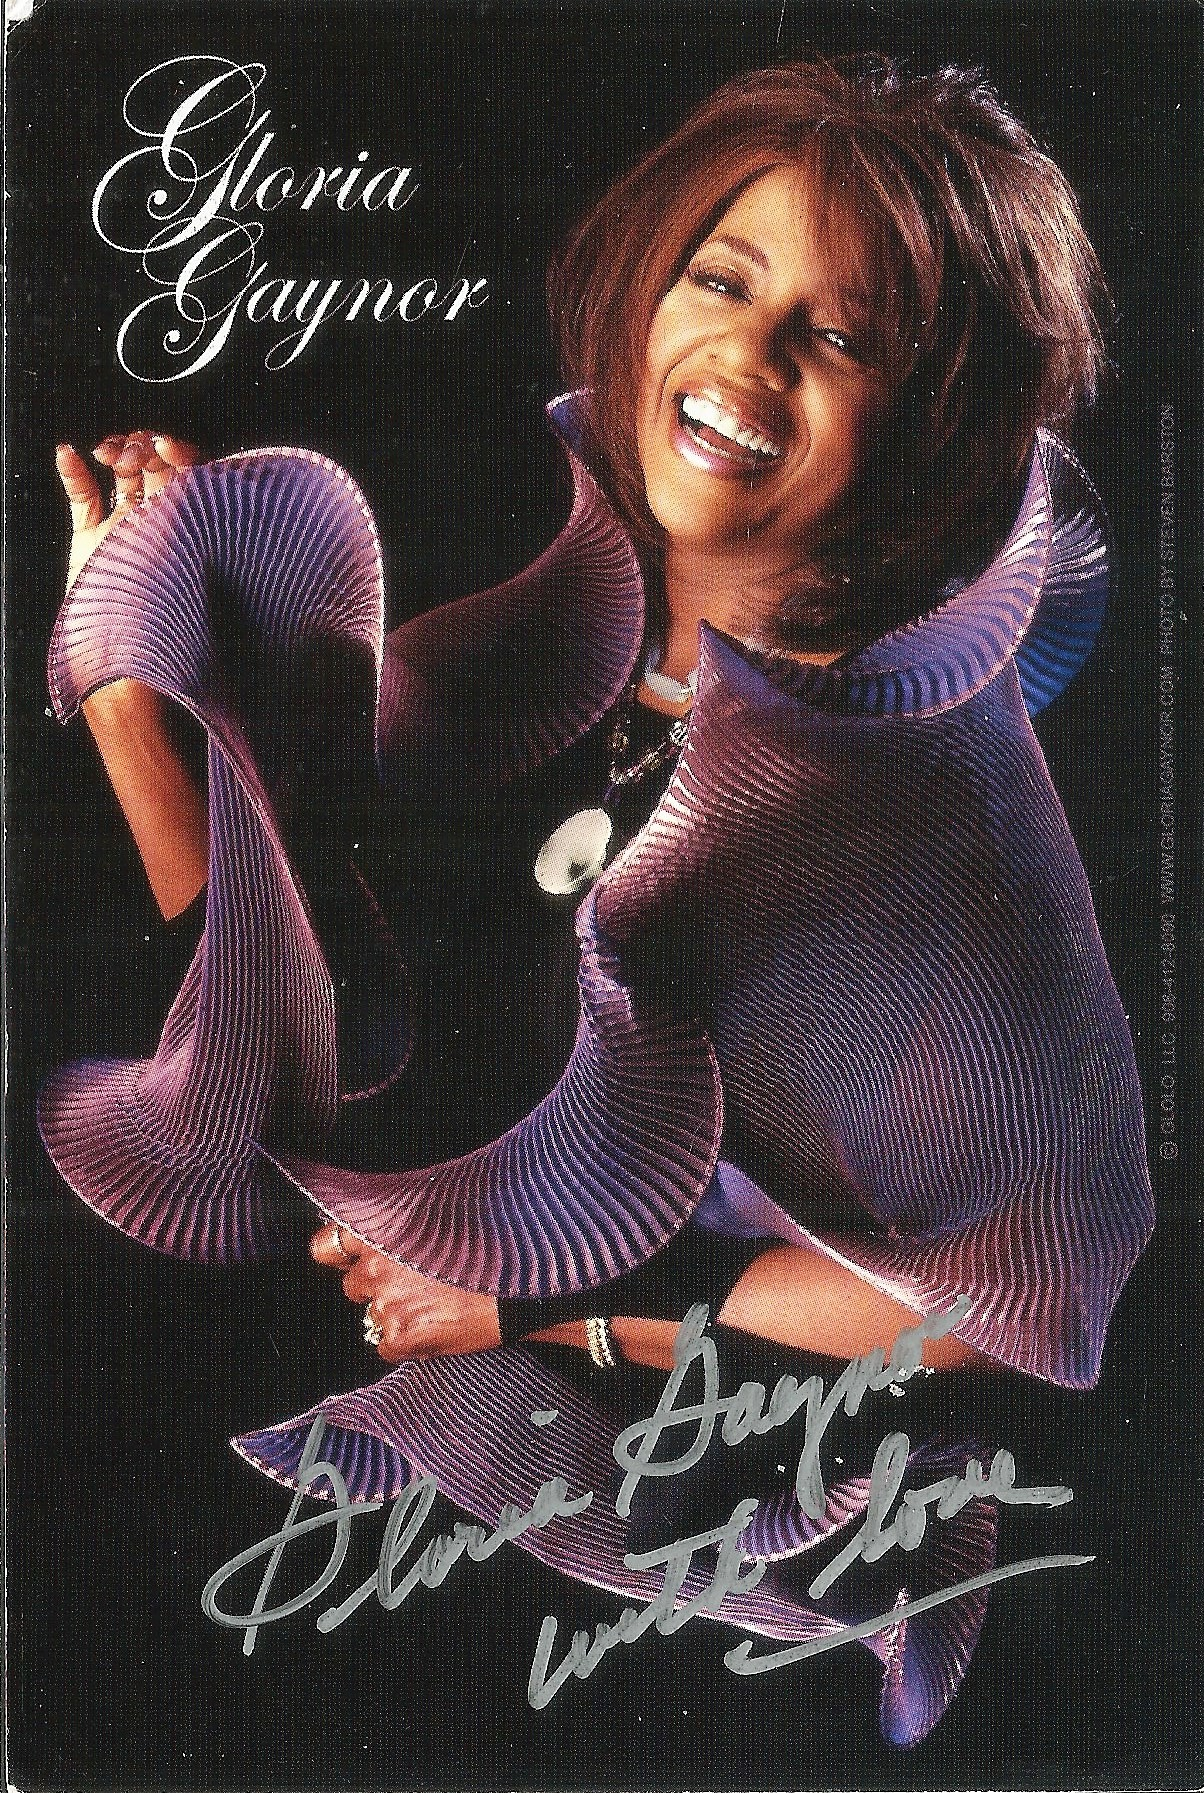 Gloria Gaynor signed 6x4 colour promo card. Good condition. All autographs come with a Certificate